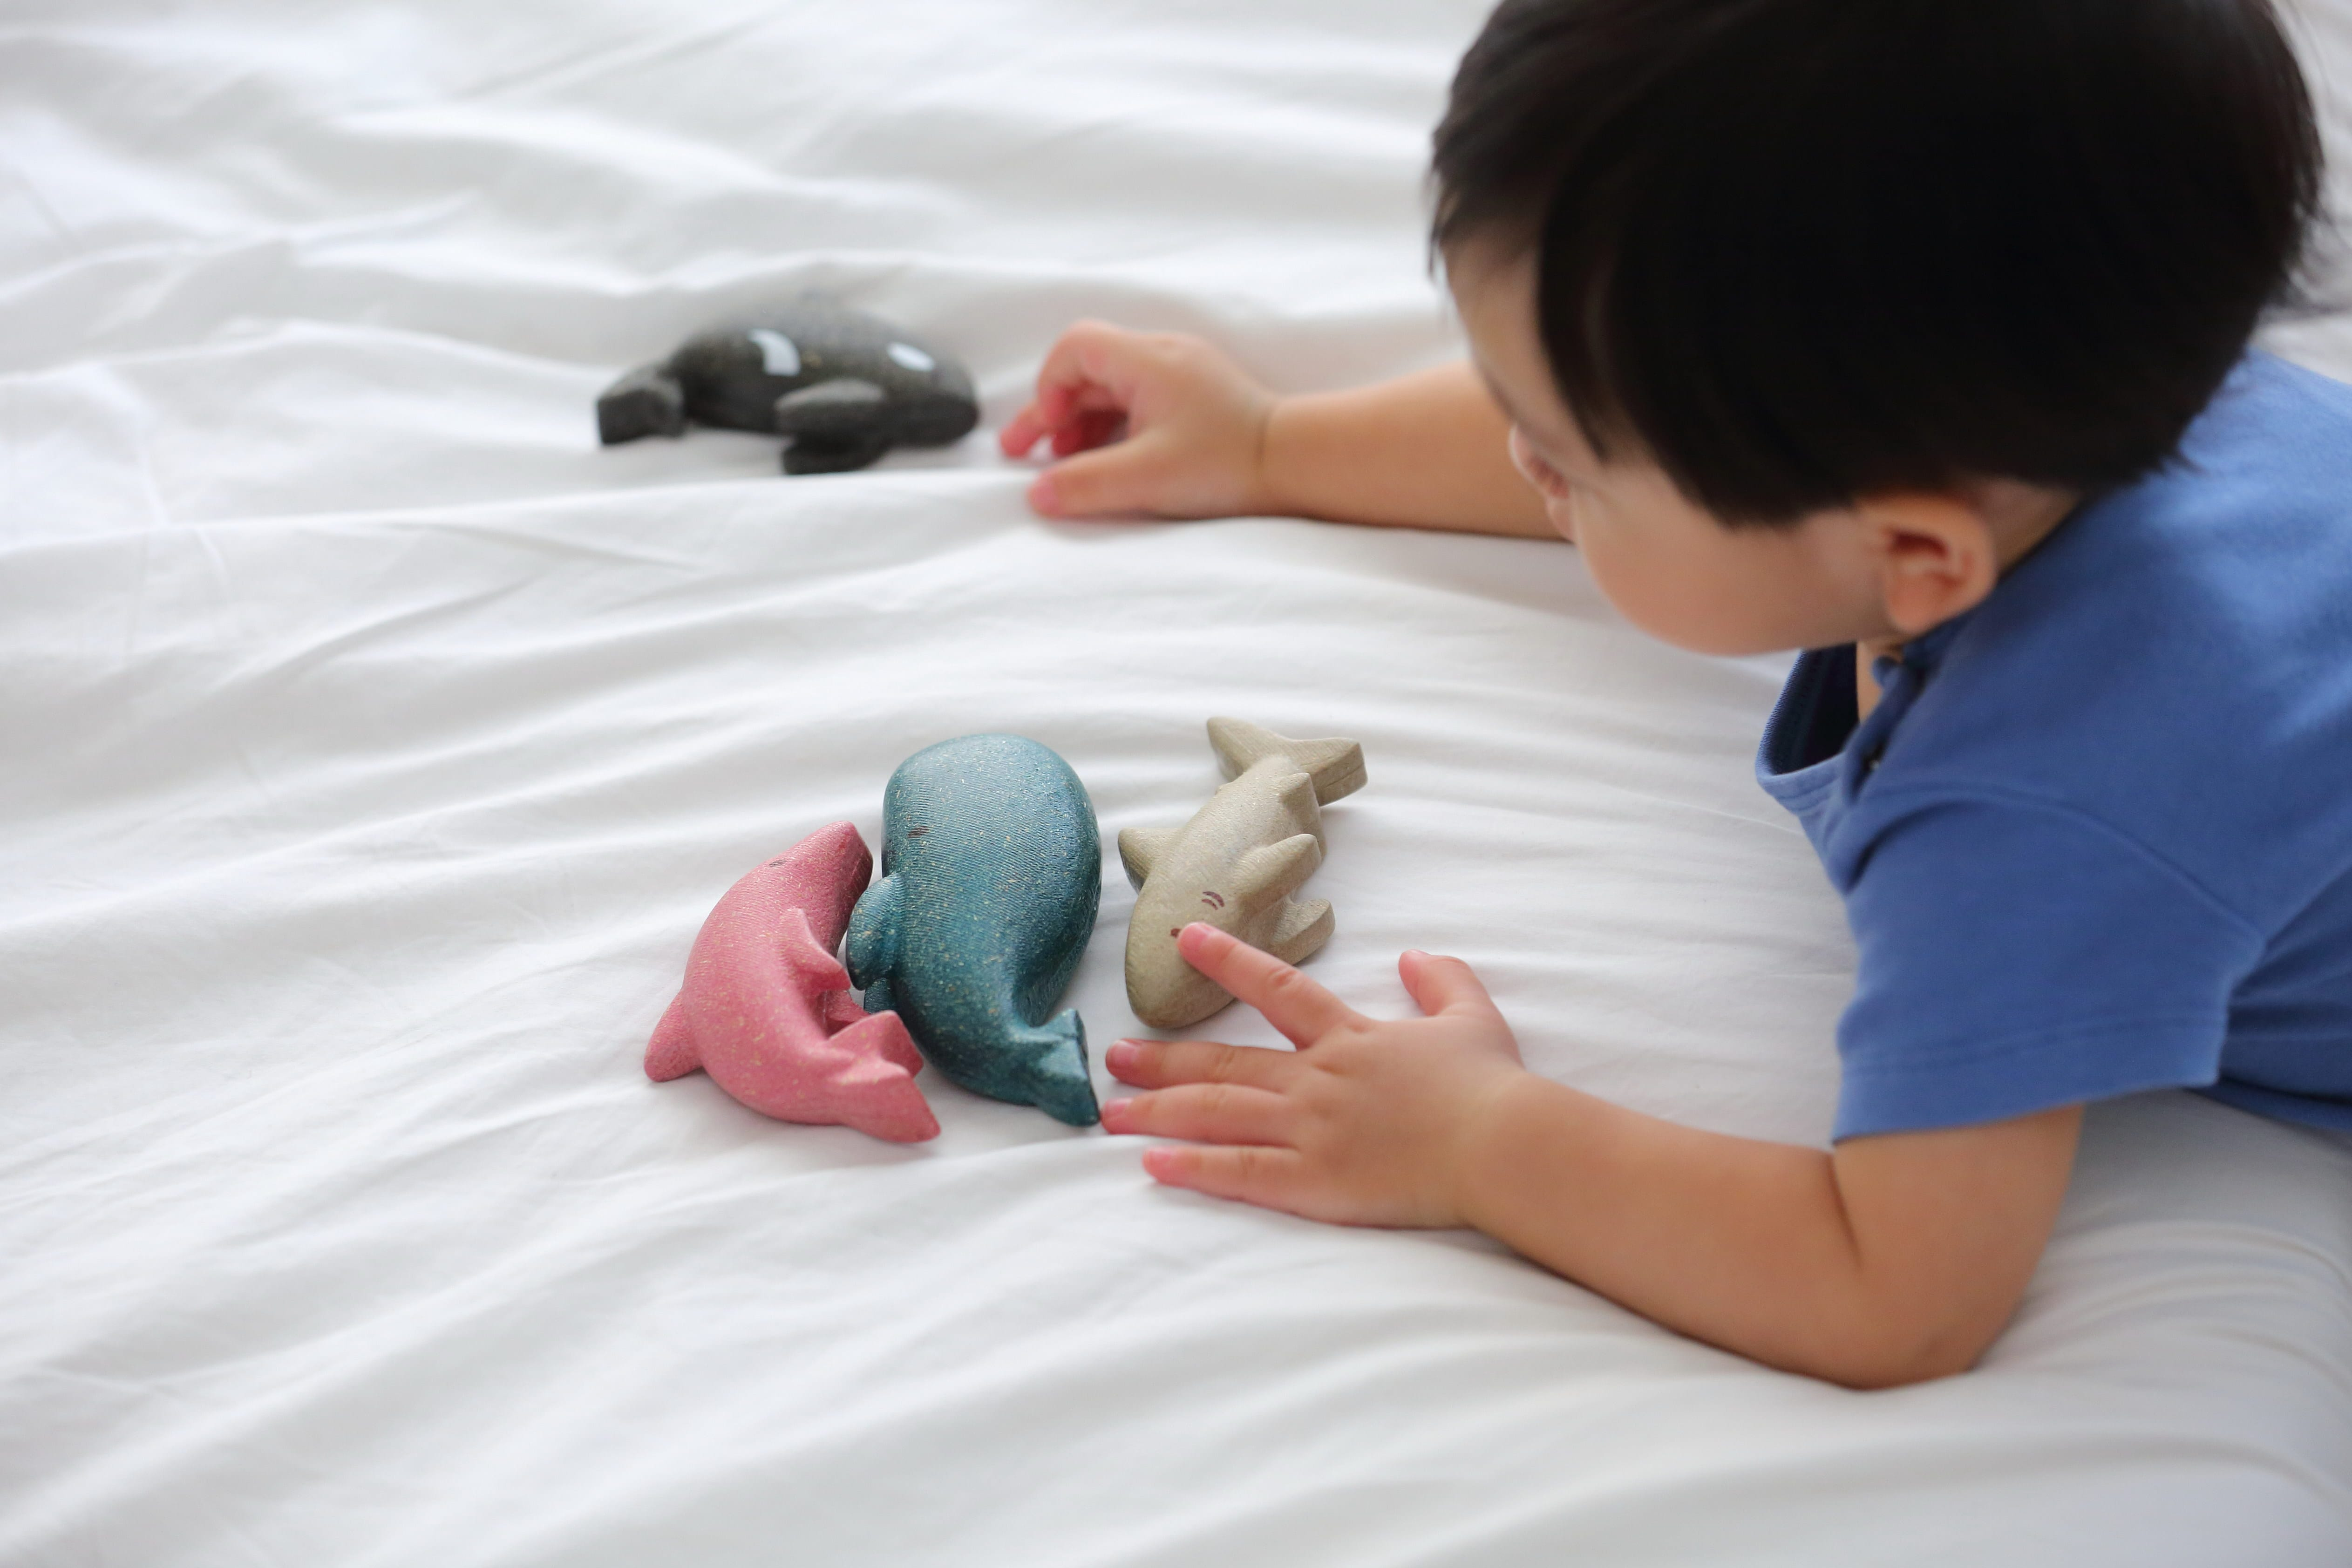 6140_PlanToys_WHALE_Pretend_Play_Imagination_Social_Language_and_Communications_Fine_Motor_12m_Wooden_toys_Education_toys_Safety_Toys_Non-toxic_1.jpg